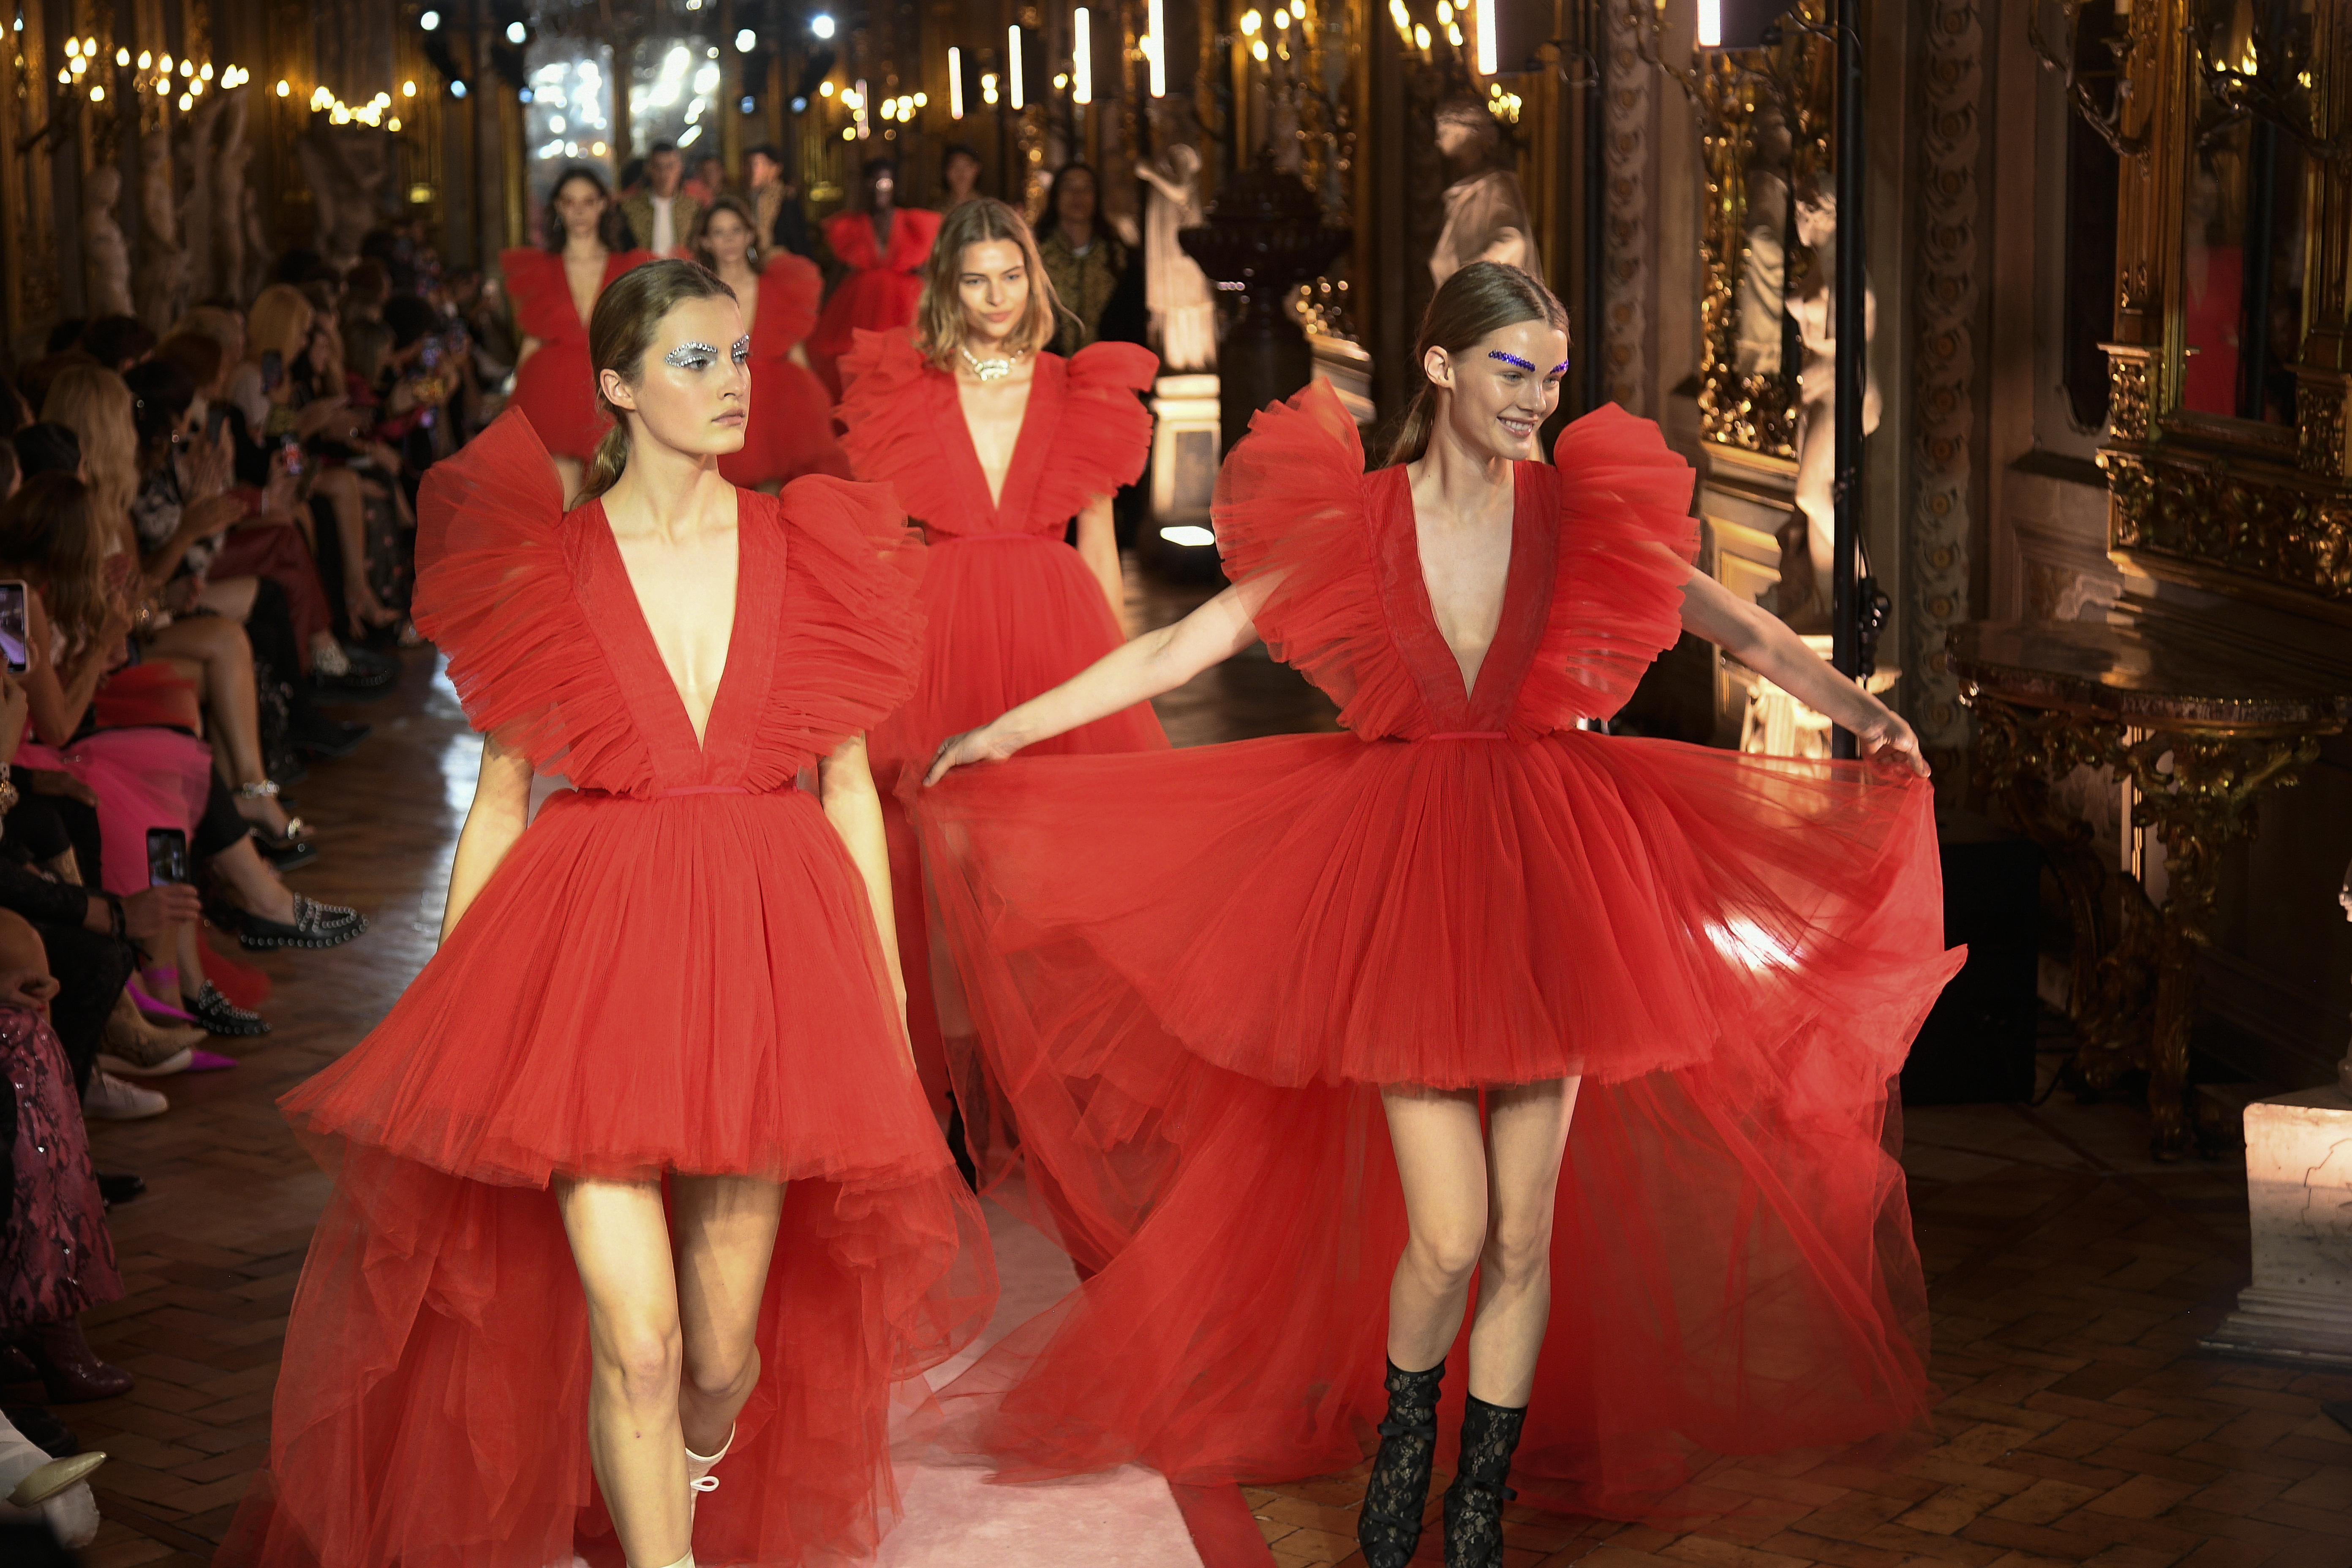 All the looks from Giambattista Valli x H&M show in Rome